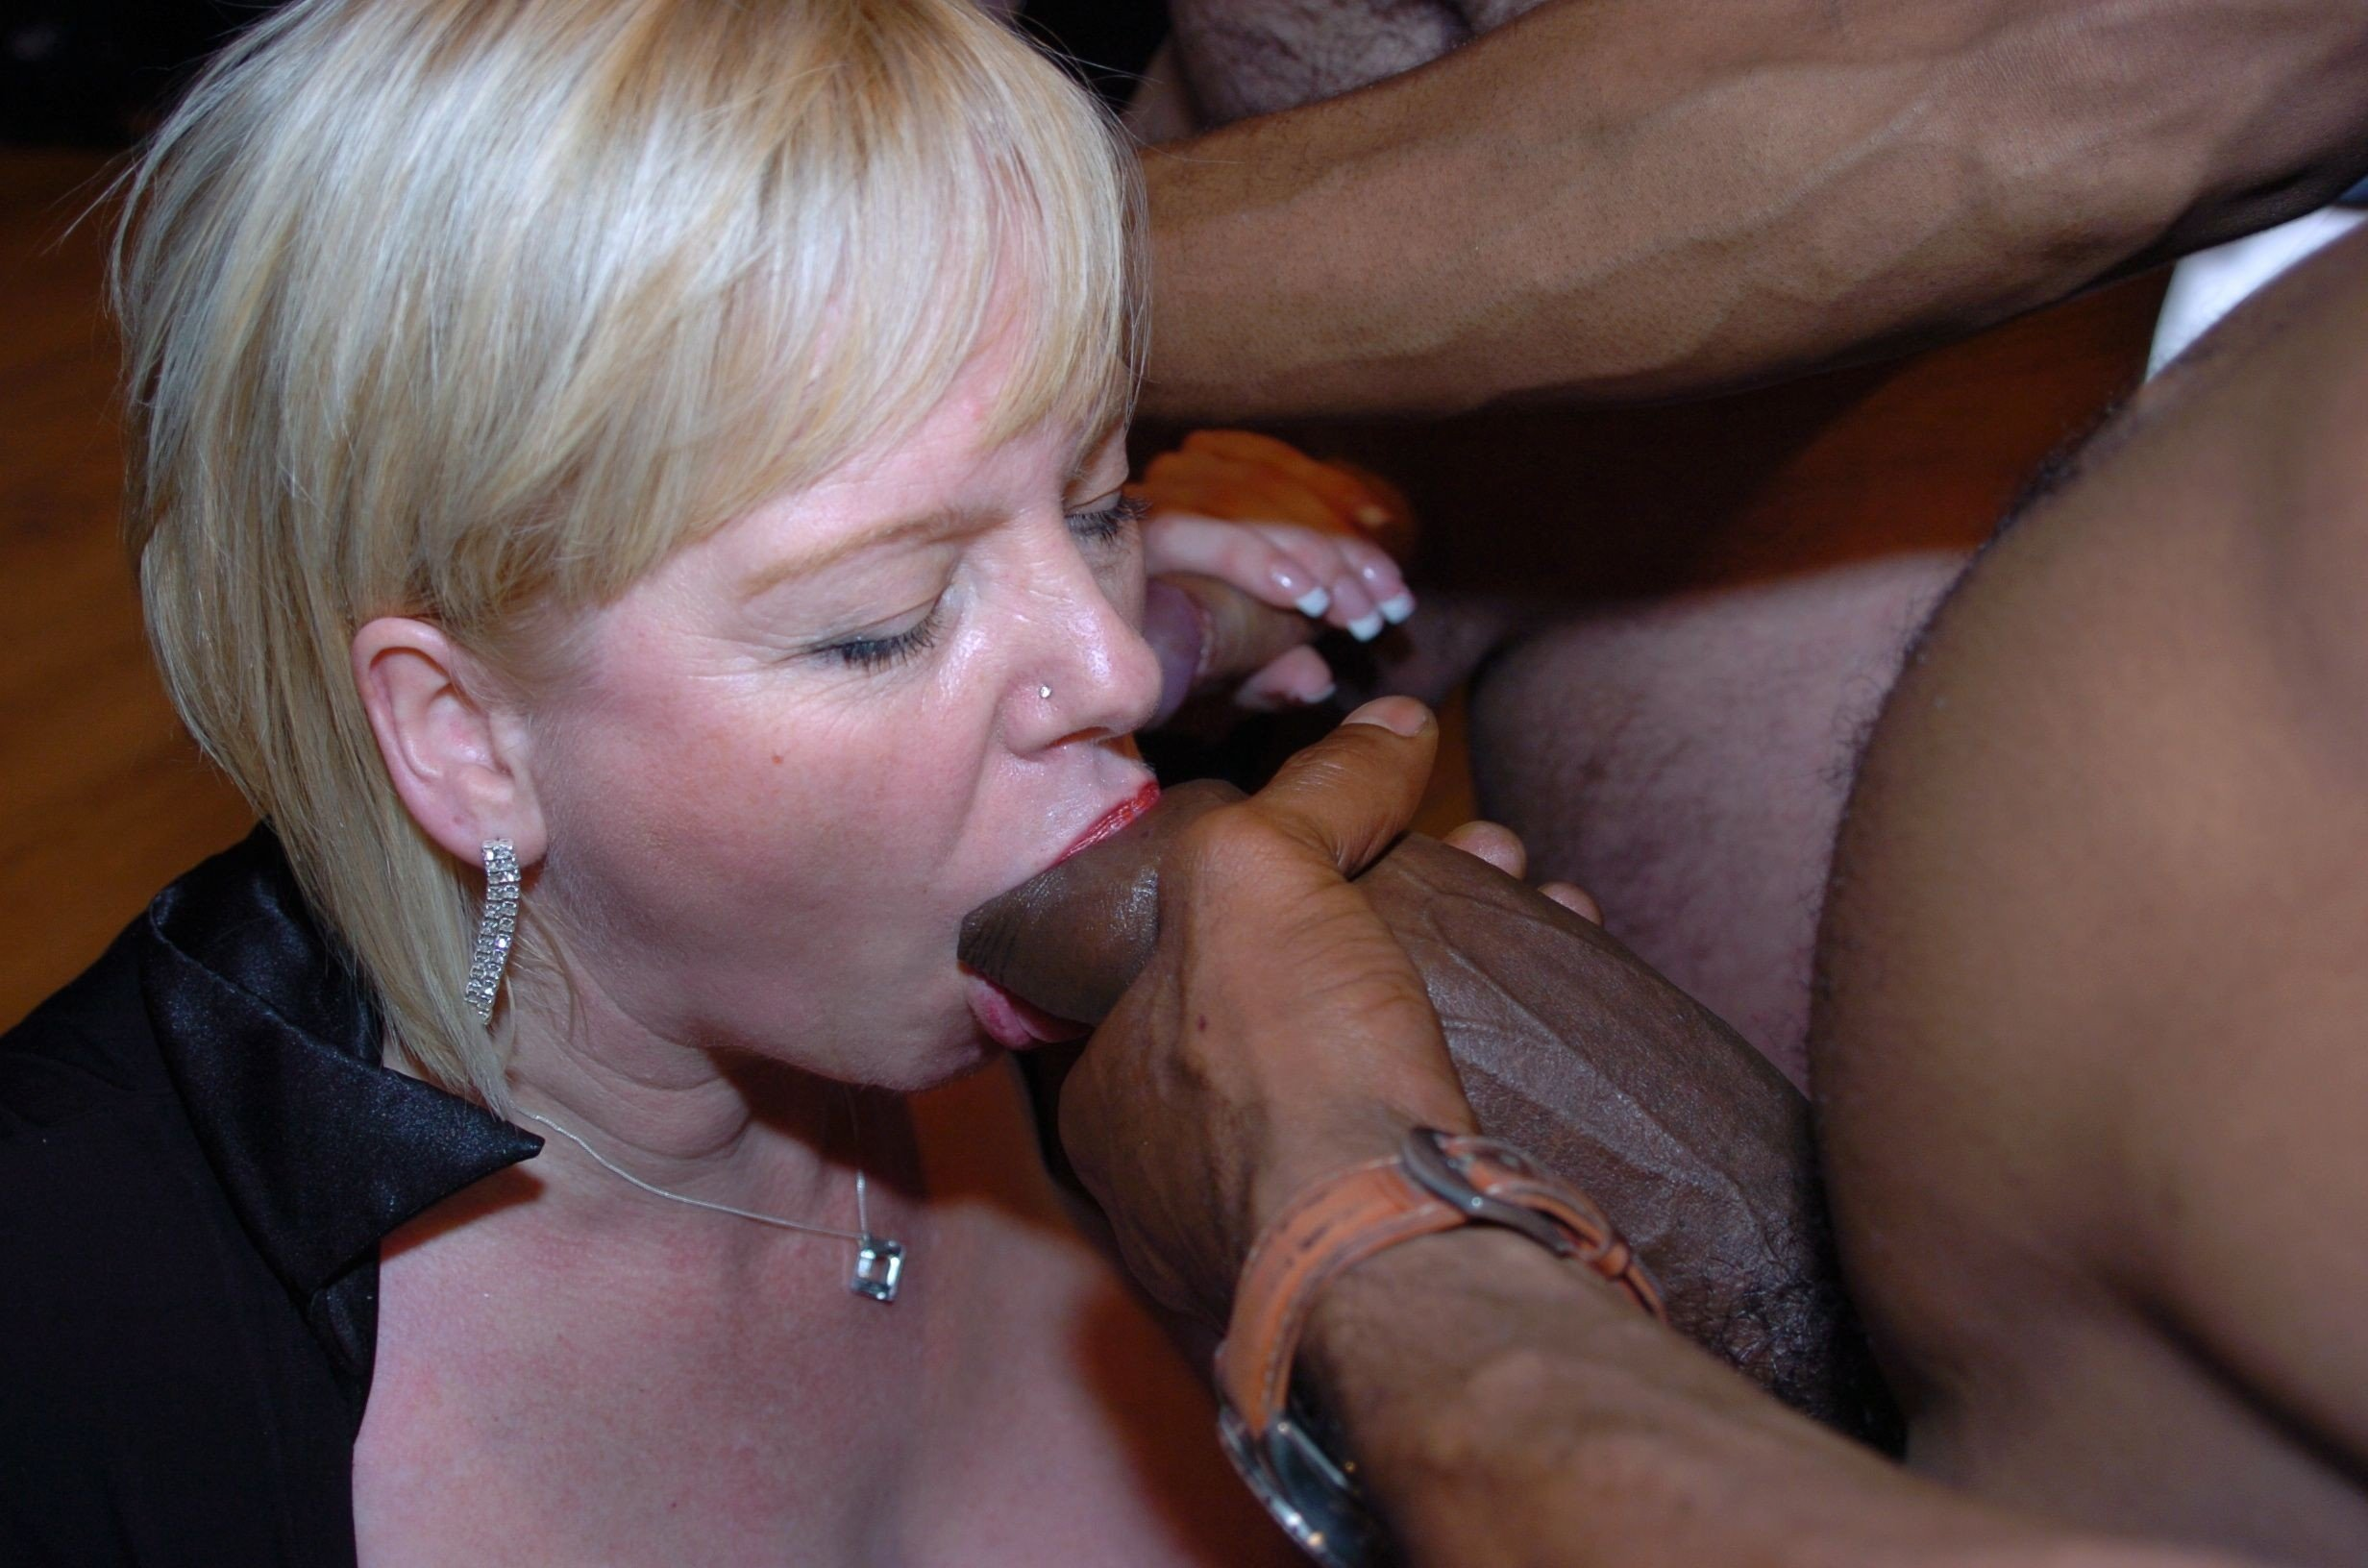 Crazy Fucker Drilling Slutty Blonde Milf In Her Small Mouth